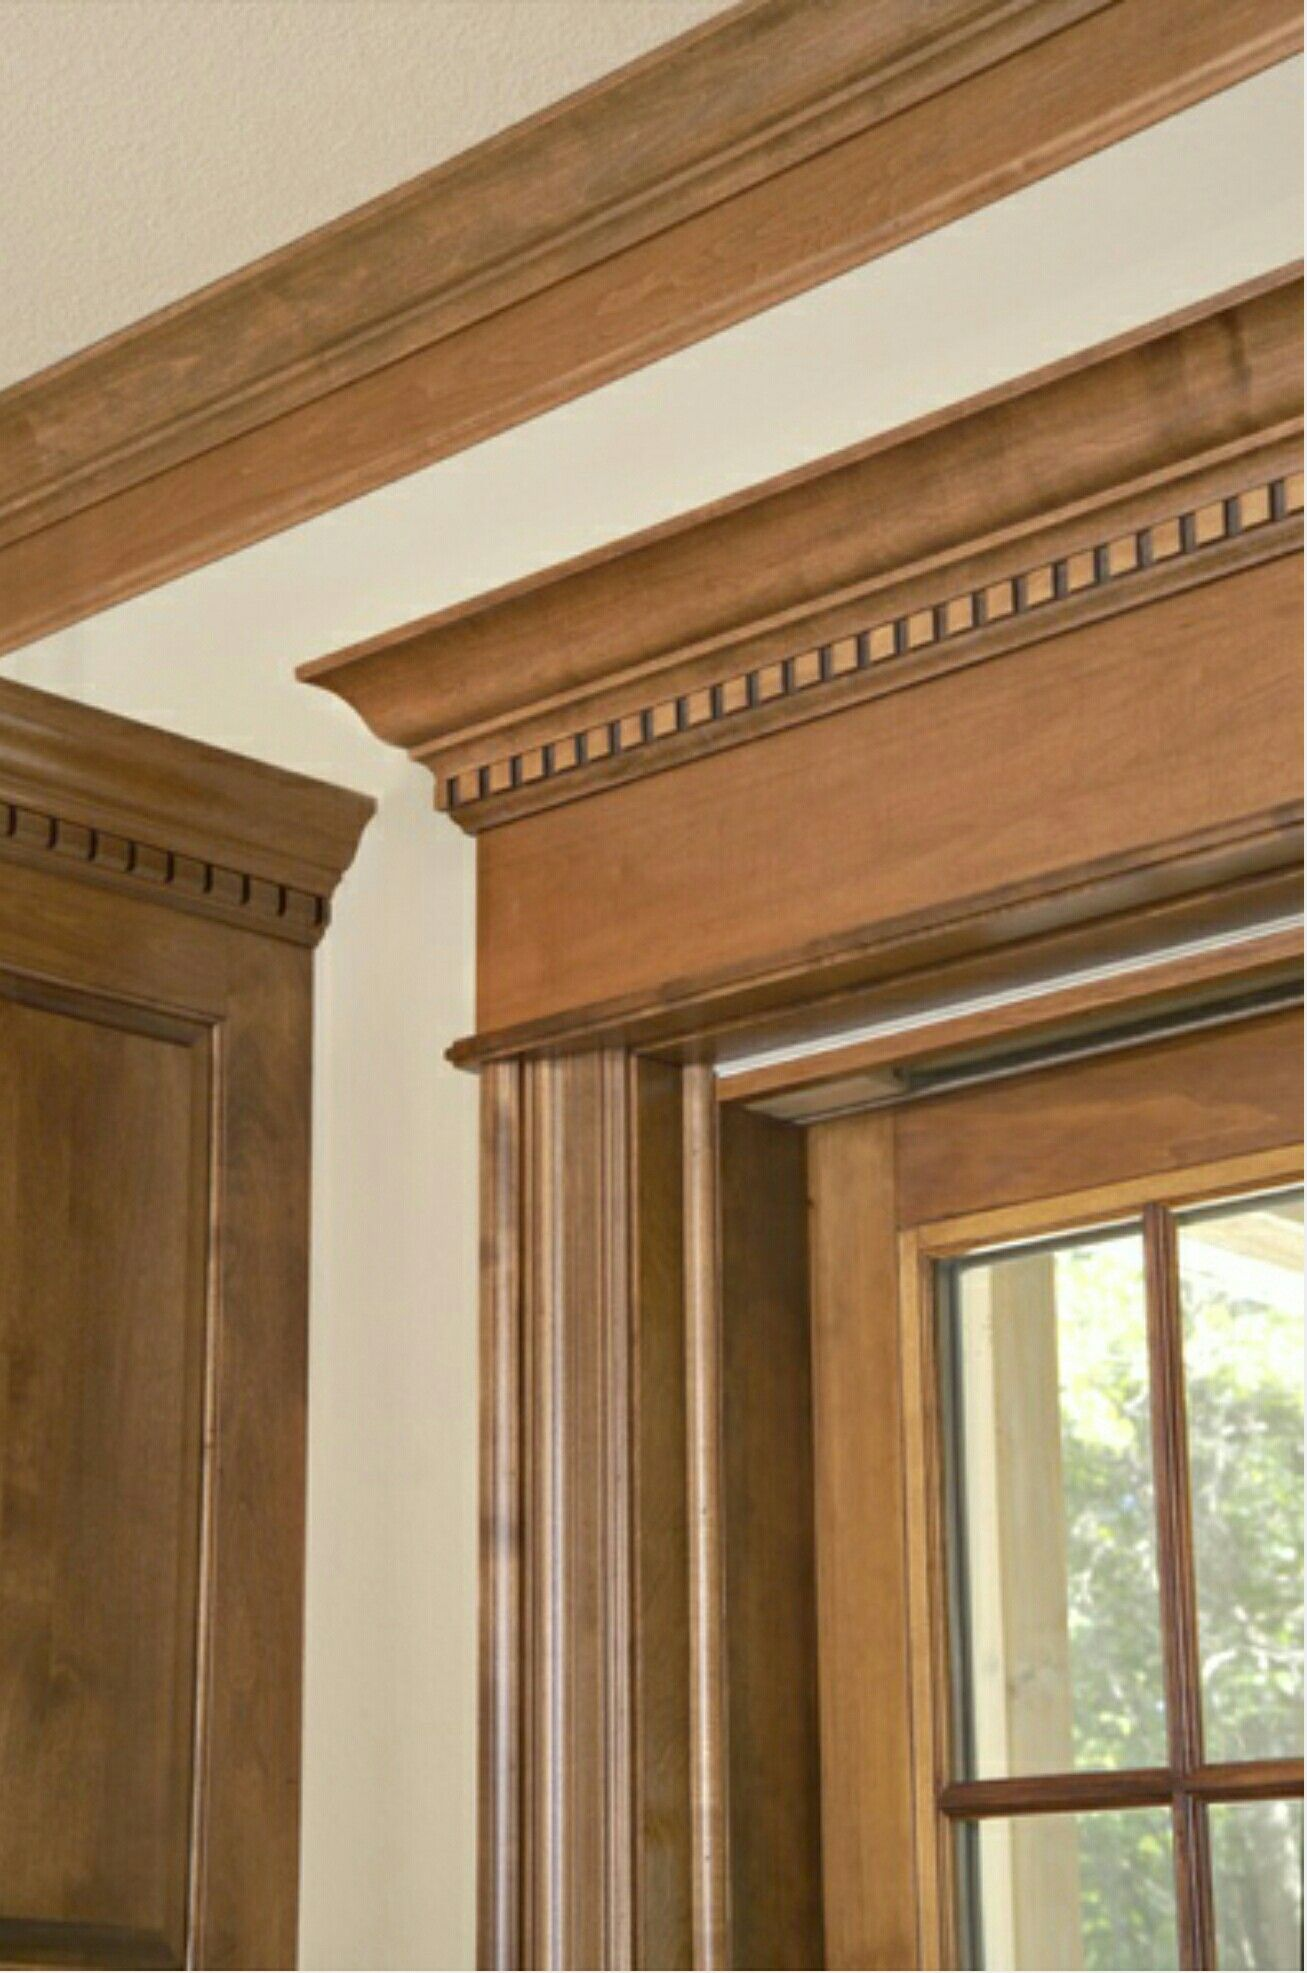 Pin By Charlene Lidyard On Home Is Where The Wine Is With Images Craftsman Home Interiors Moldings And Trim Moulding And Millwork